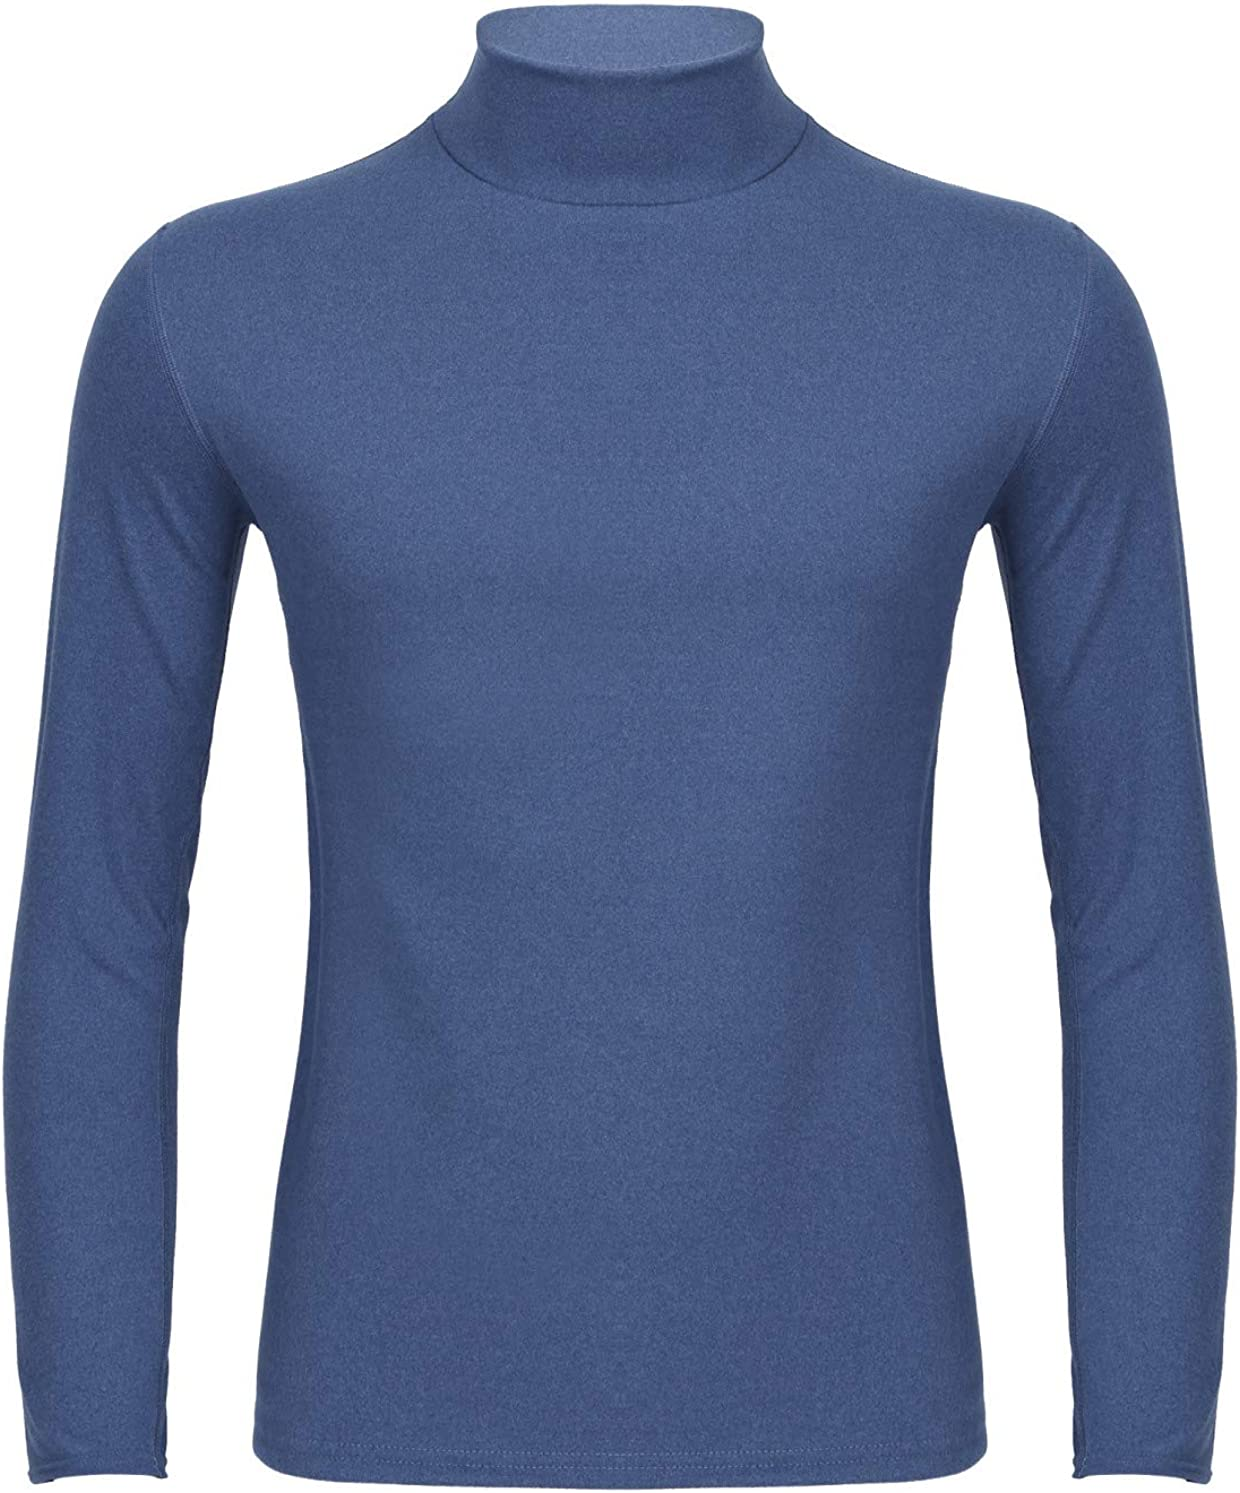 moily Thermal Underwear Tops for Men Turtleneck Long Sleeve Undershirt Base Layer Shirts